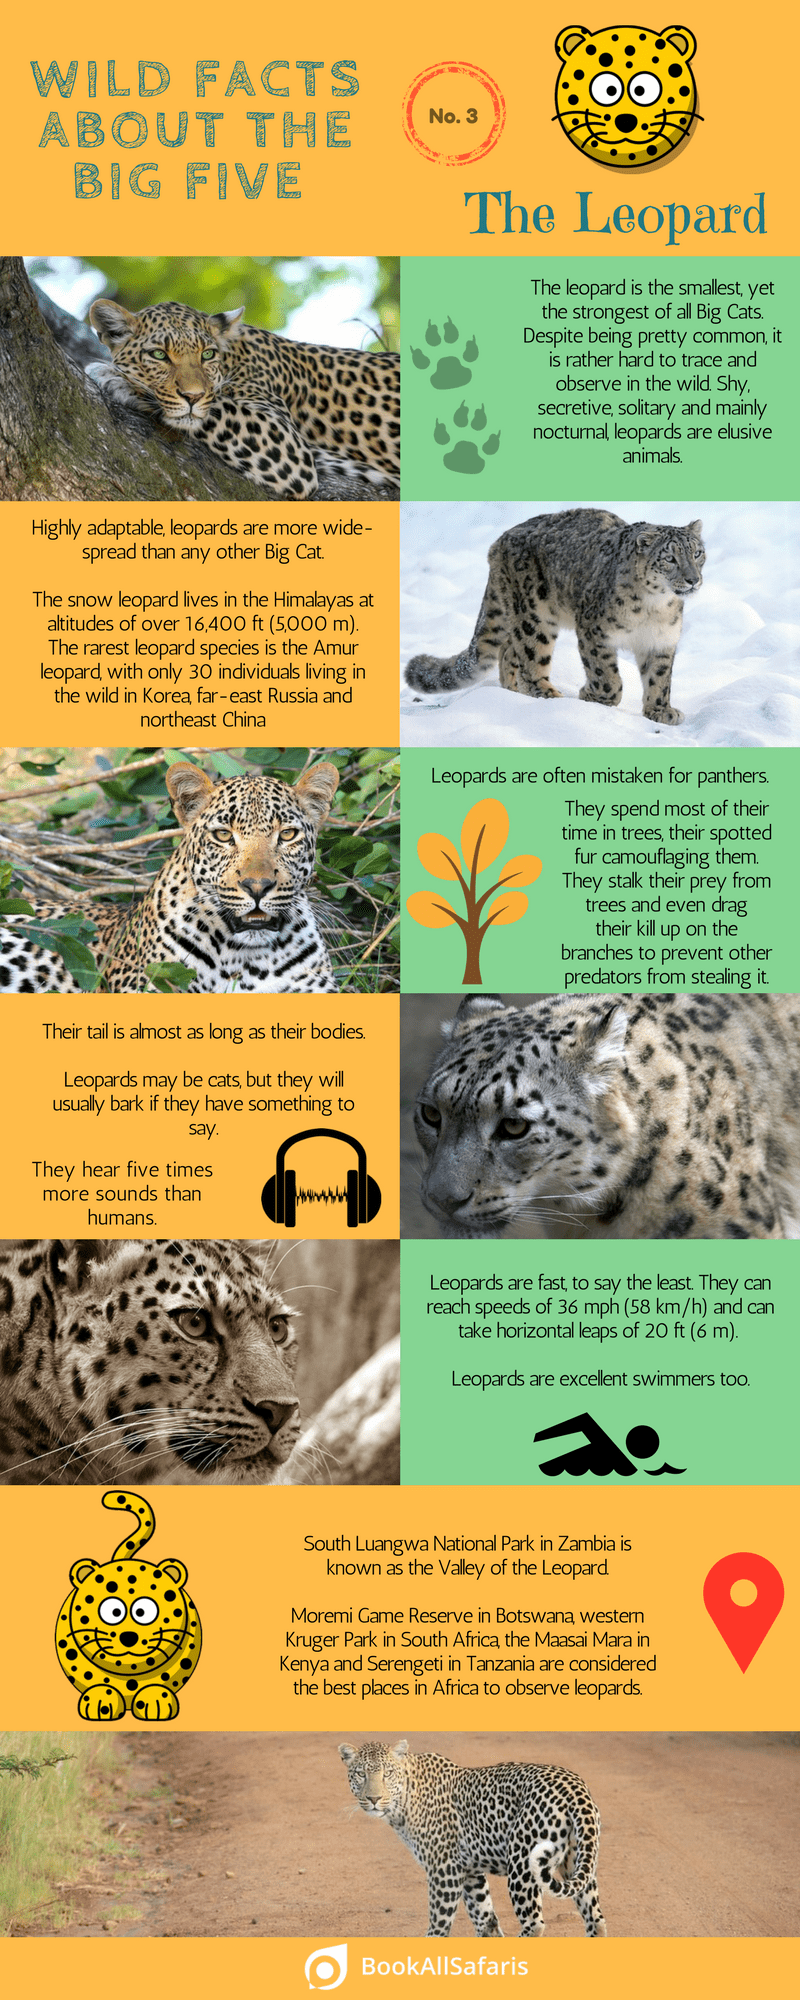 the big five facts